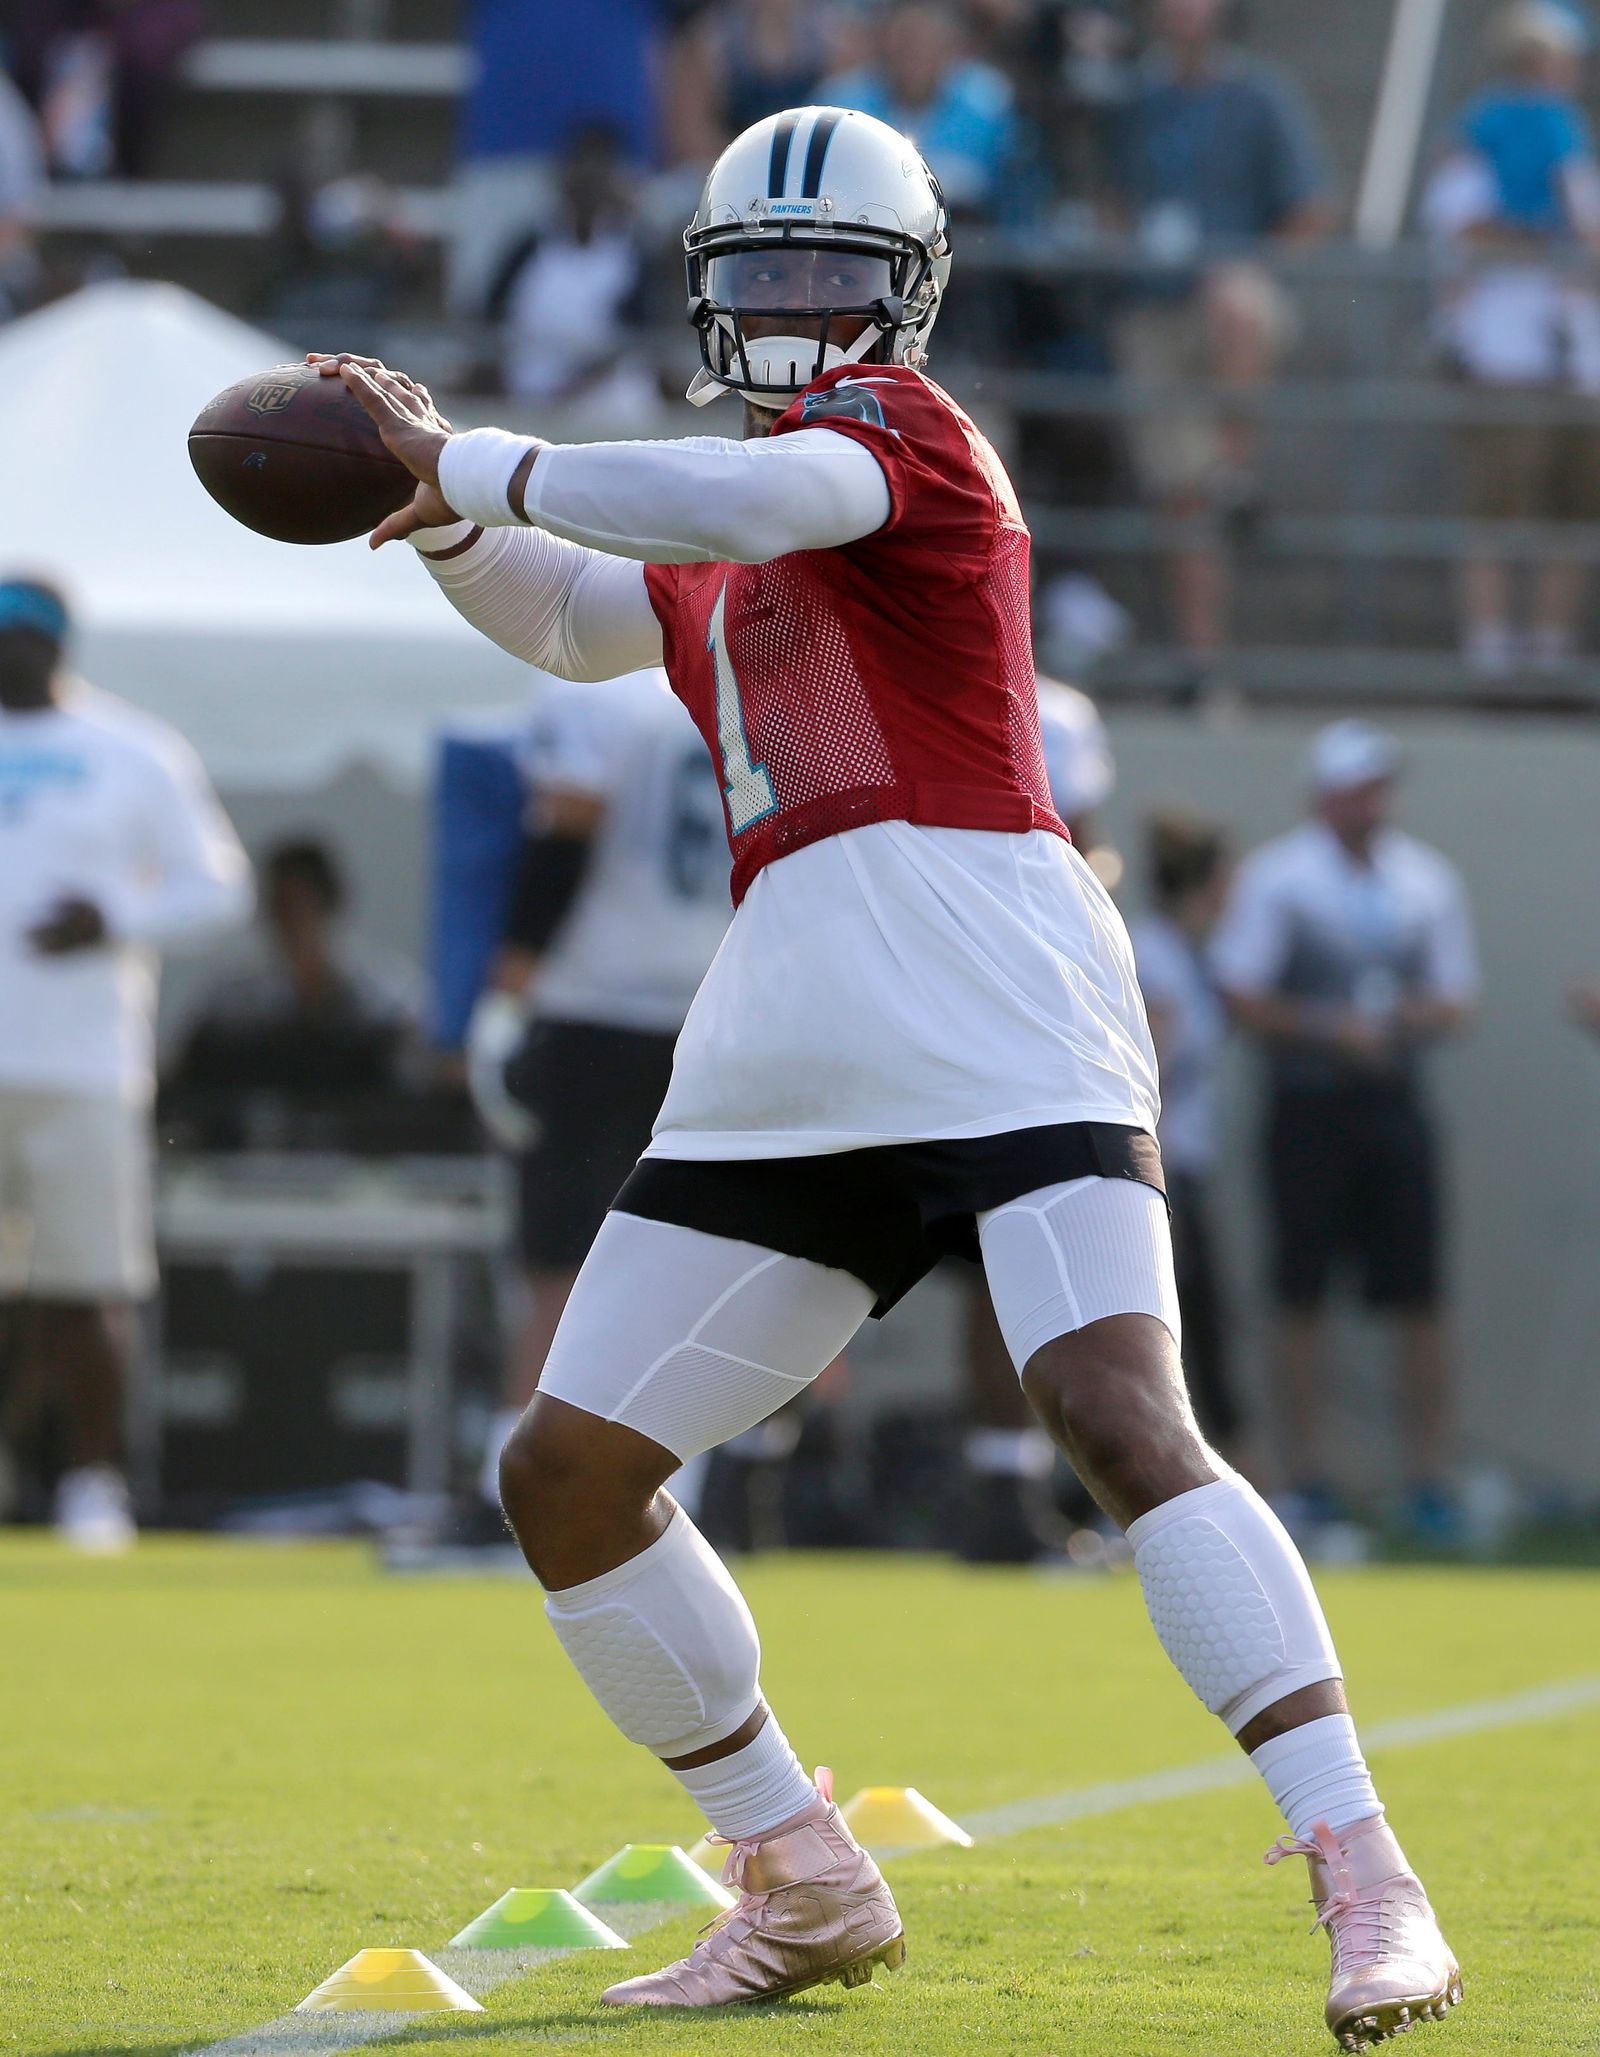 Carolina Panthers' Cam Newton (1) looks to throw a pass during practice at training camp at Wofford College in Spartanburg, S.C., Wednesday, July 26, 2017. (AP Photo/Chuck Burton)